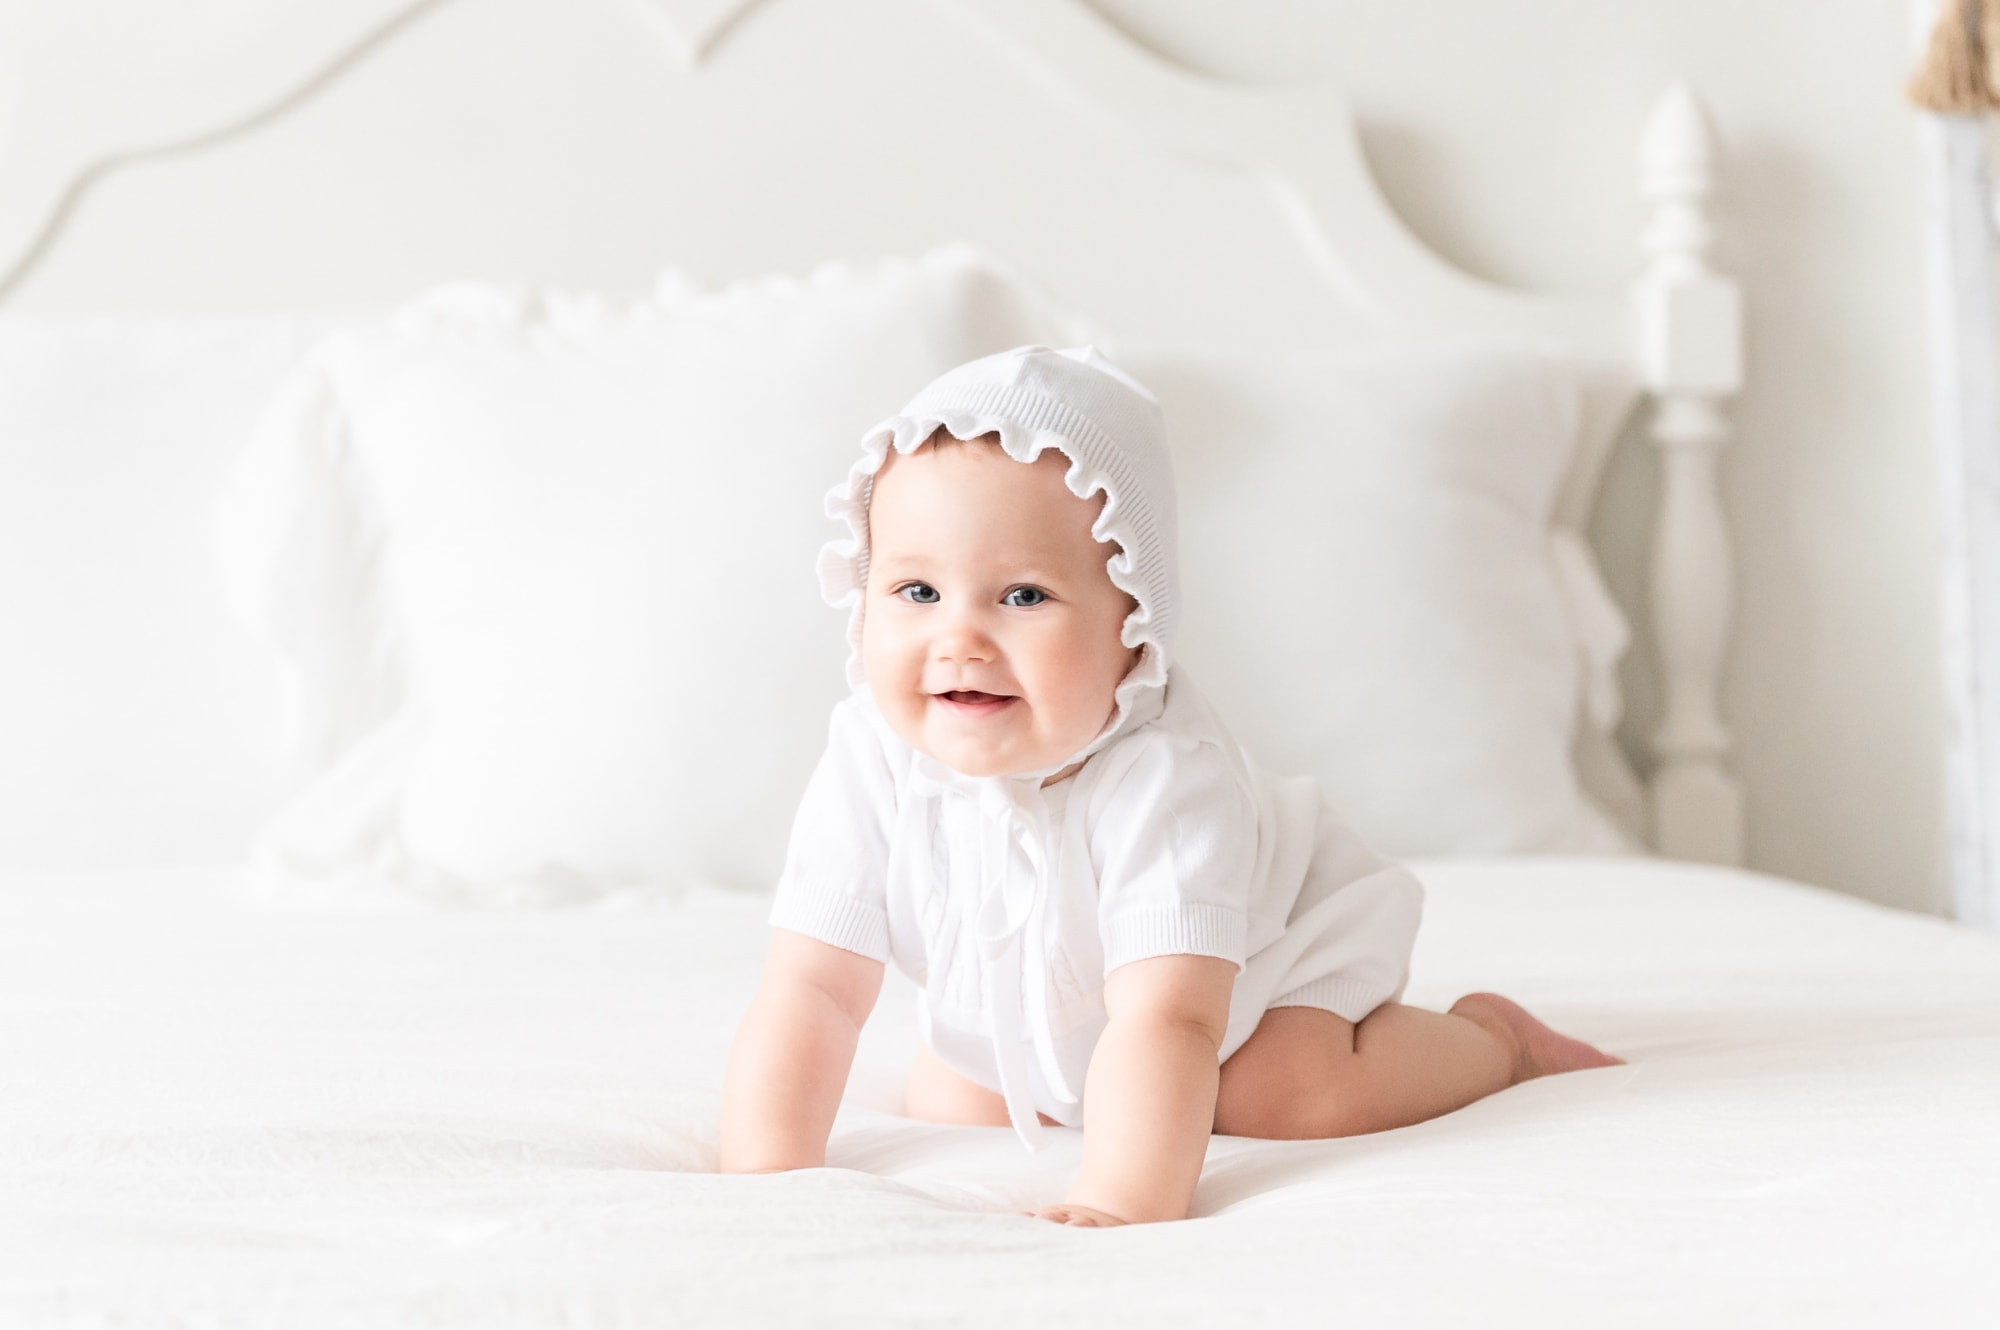 Baby girl wearing white bonnet and knit set during milestone session. Photo by Aimee Hamilton Photography